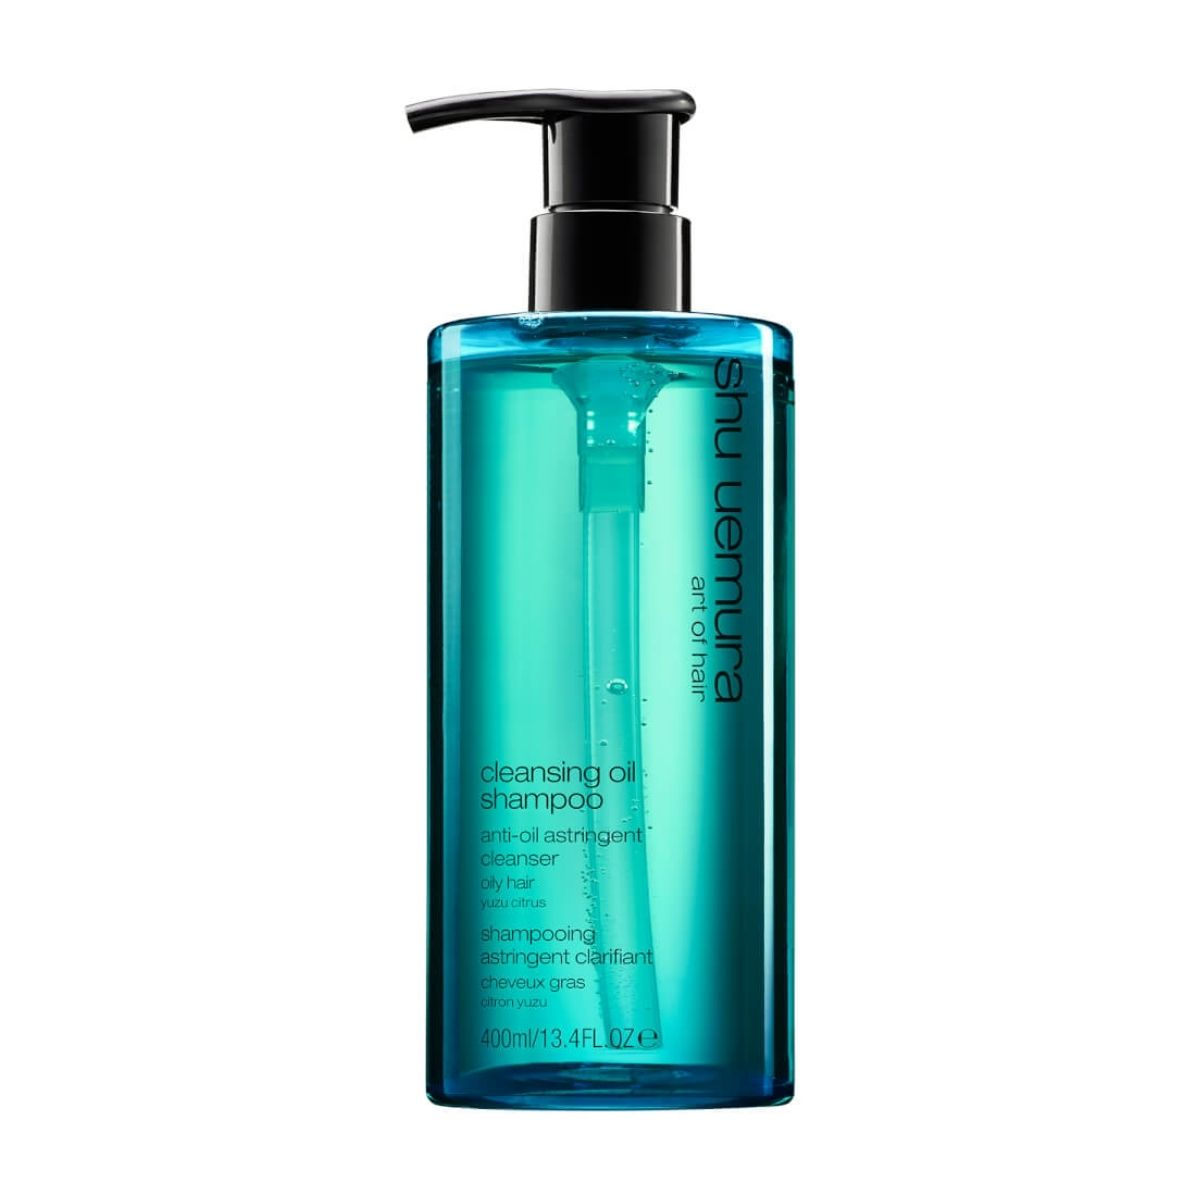 Shu Uemura Cleansing Oil Anti-Oil Astringent Shampoo - Oily Hair